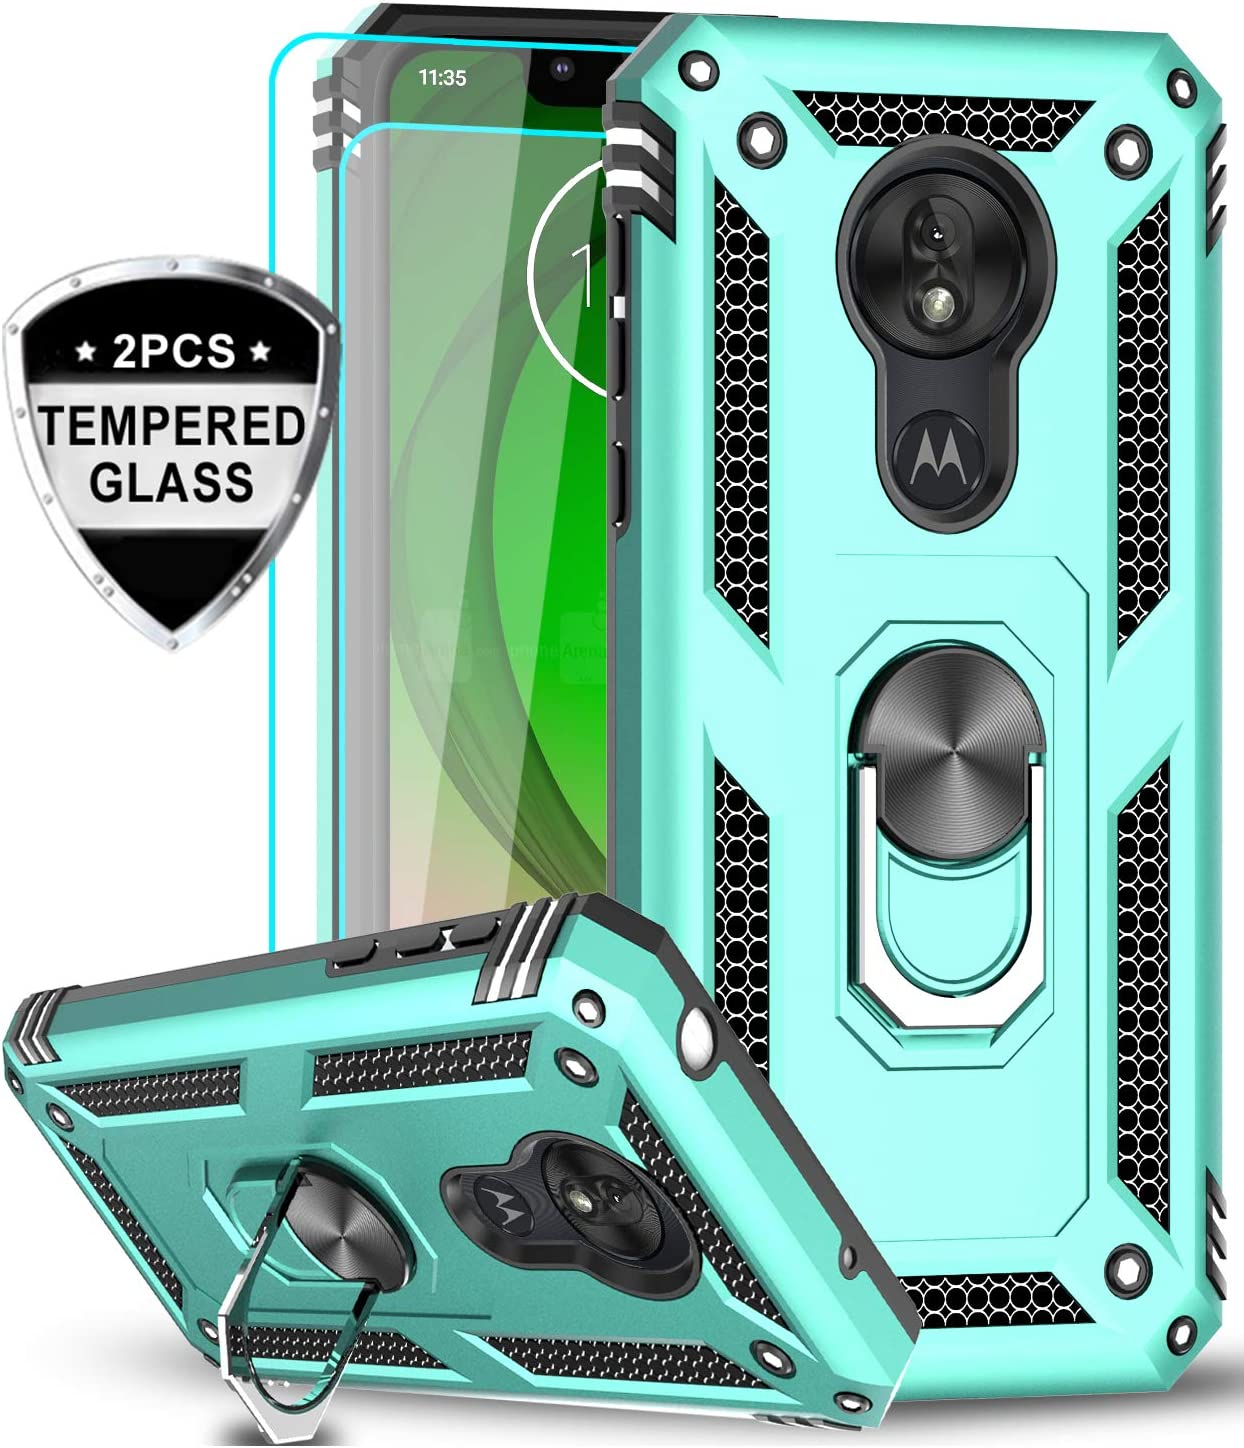 LeYi Moto G7 Play Case (Not Fit Moto G7) with Tempered Glass Screen Protector [2 Pack], Military Grade Defender Phone Case with Magnetic Car Mount Kickstand for Moto G7 Play, Mint